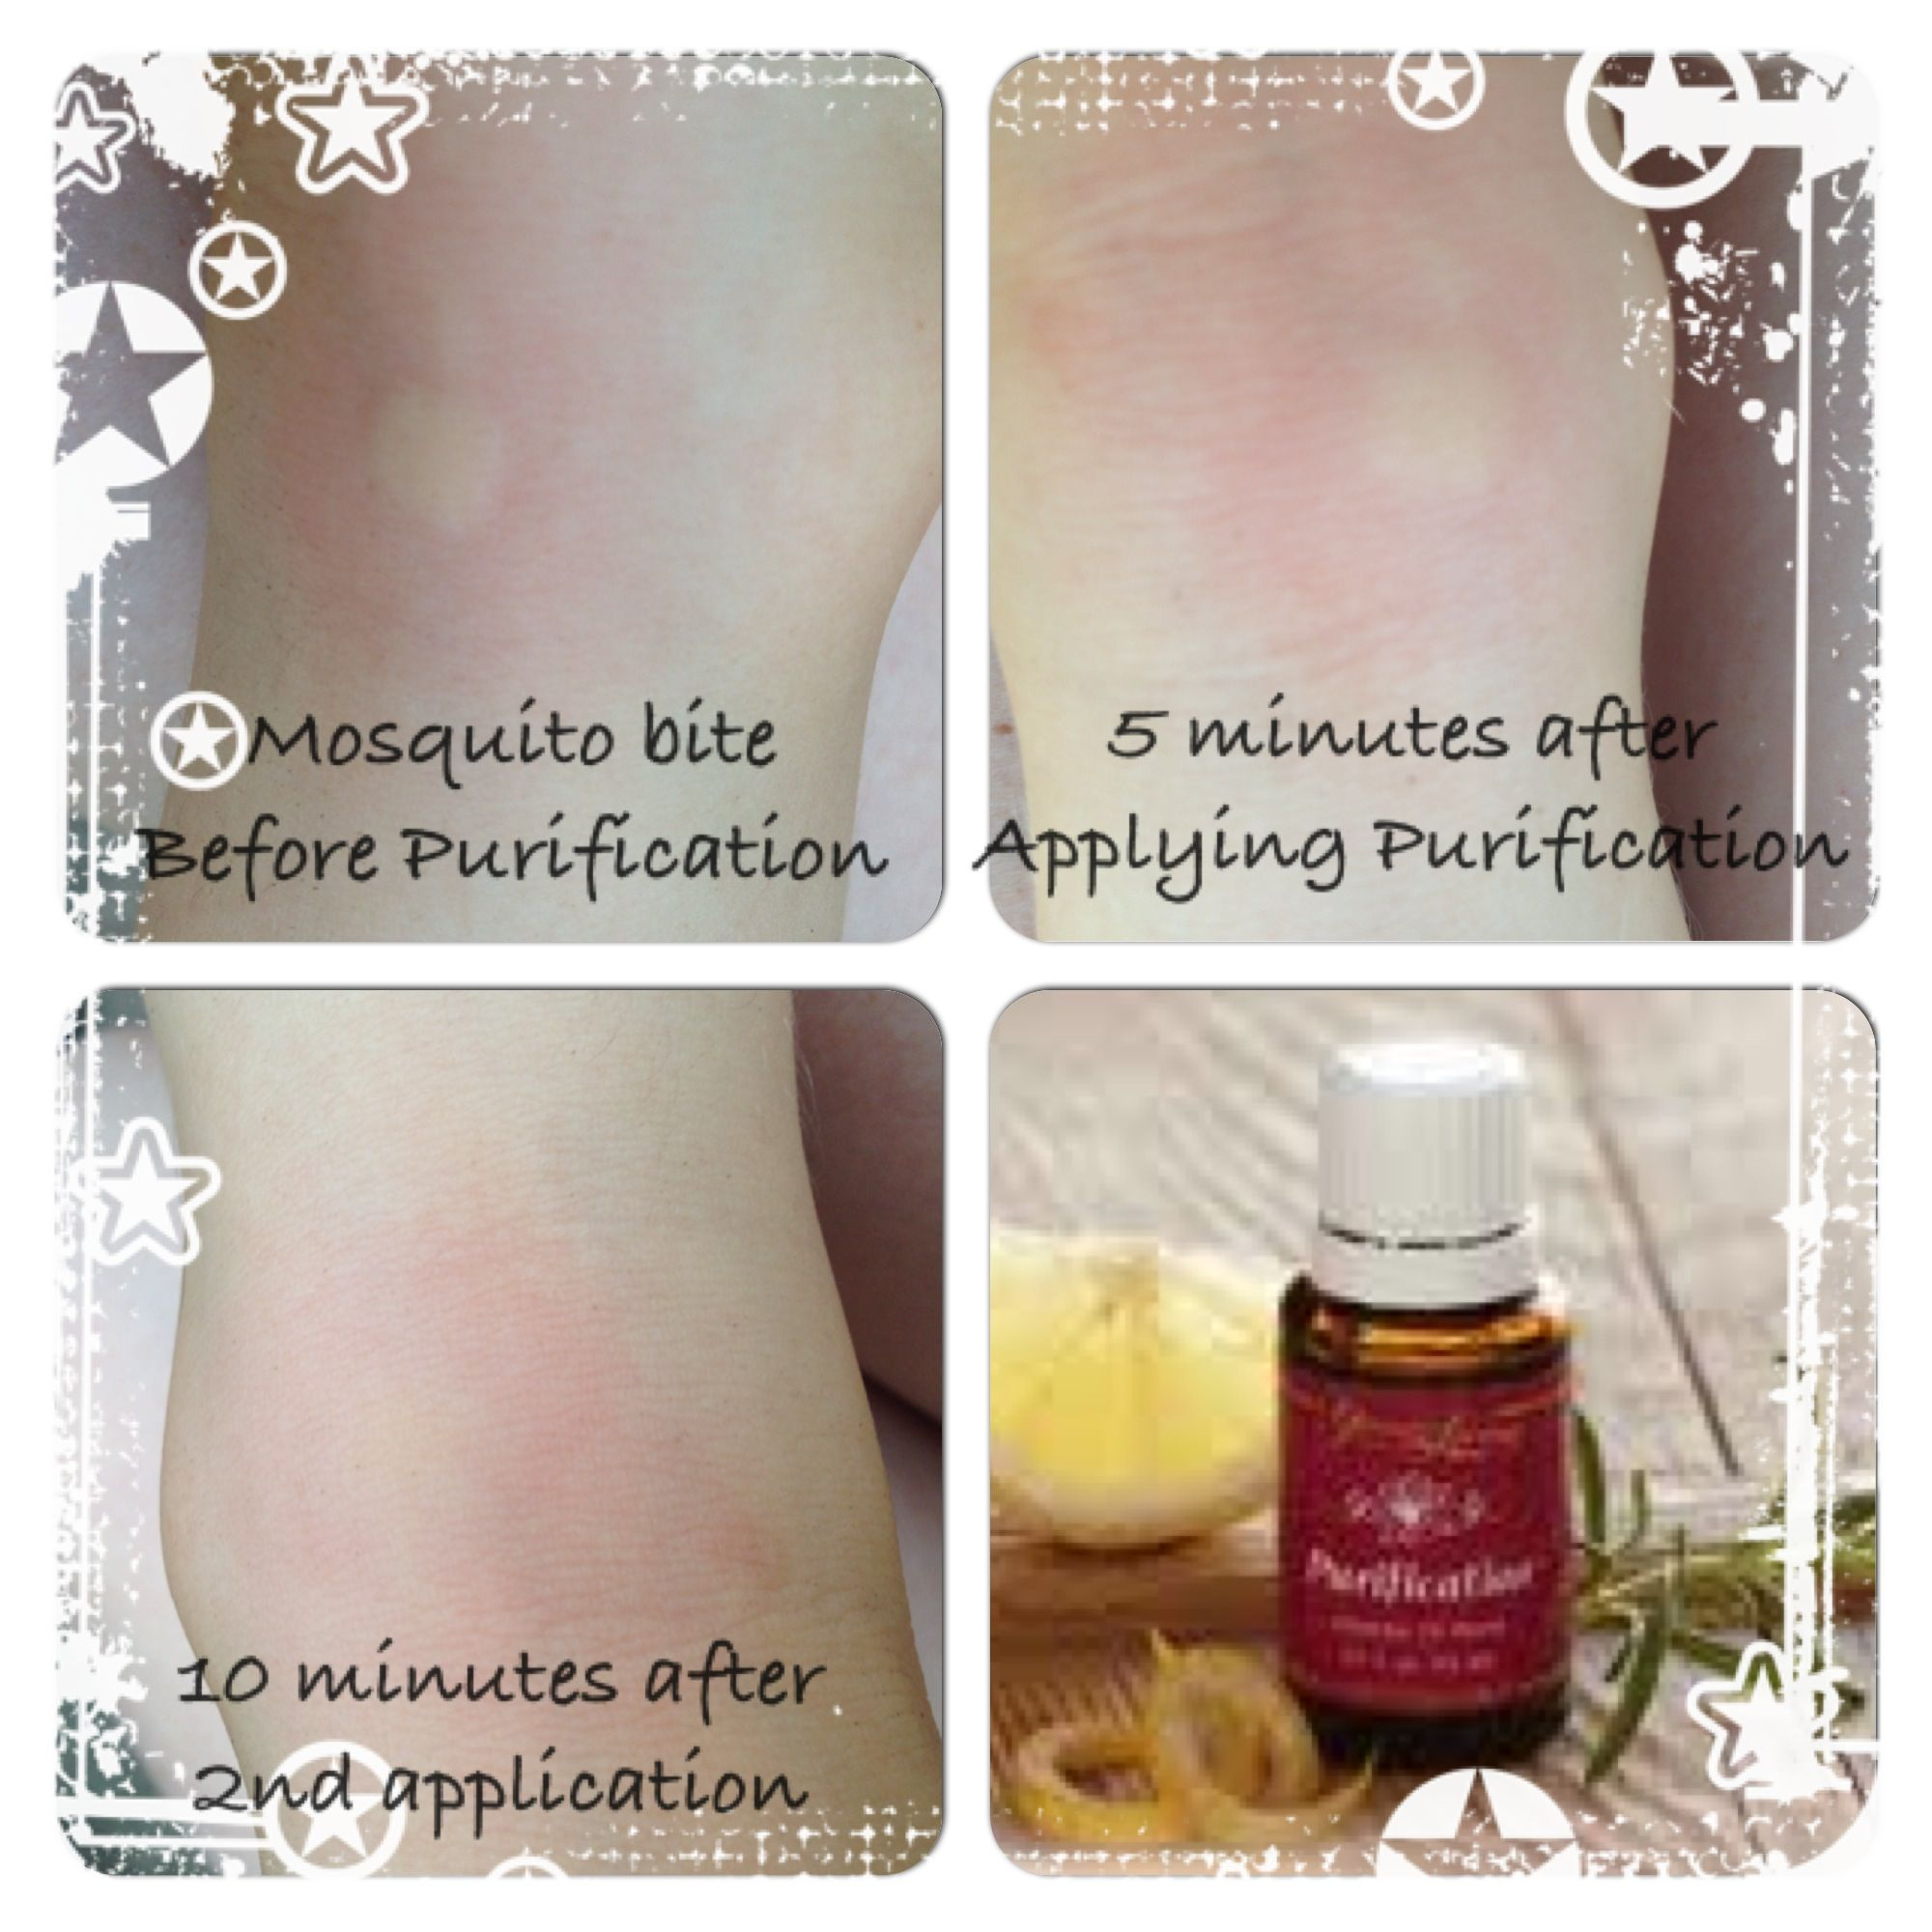 Purification Essential Oil Is Amazing For Bug Bites See More About Bite Fighters Lotion Roll On Whats In Our Natural First Aid Kit Summer Here